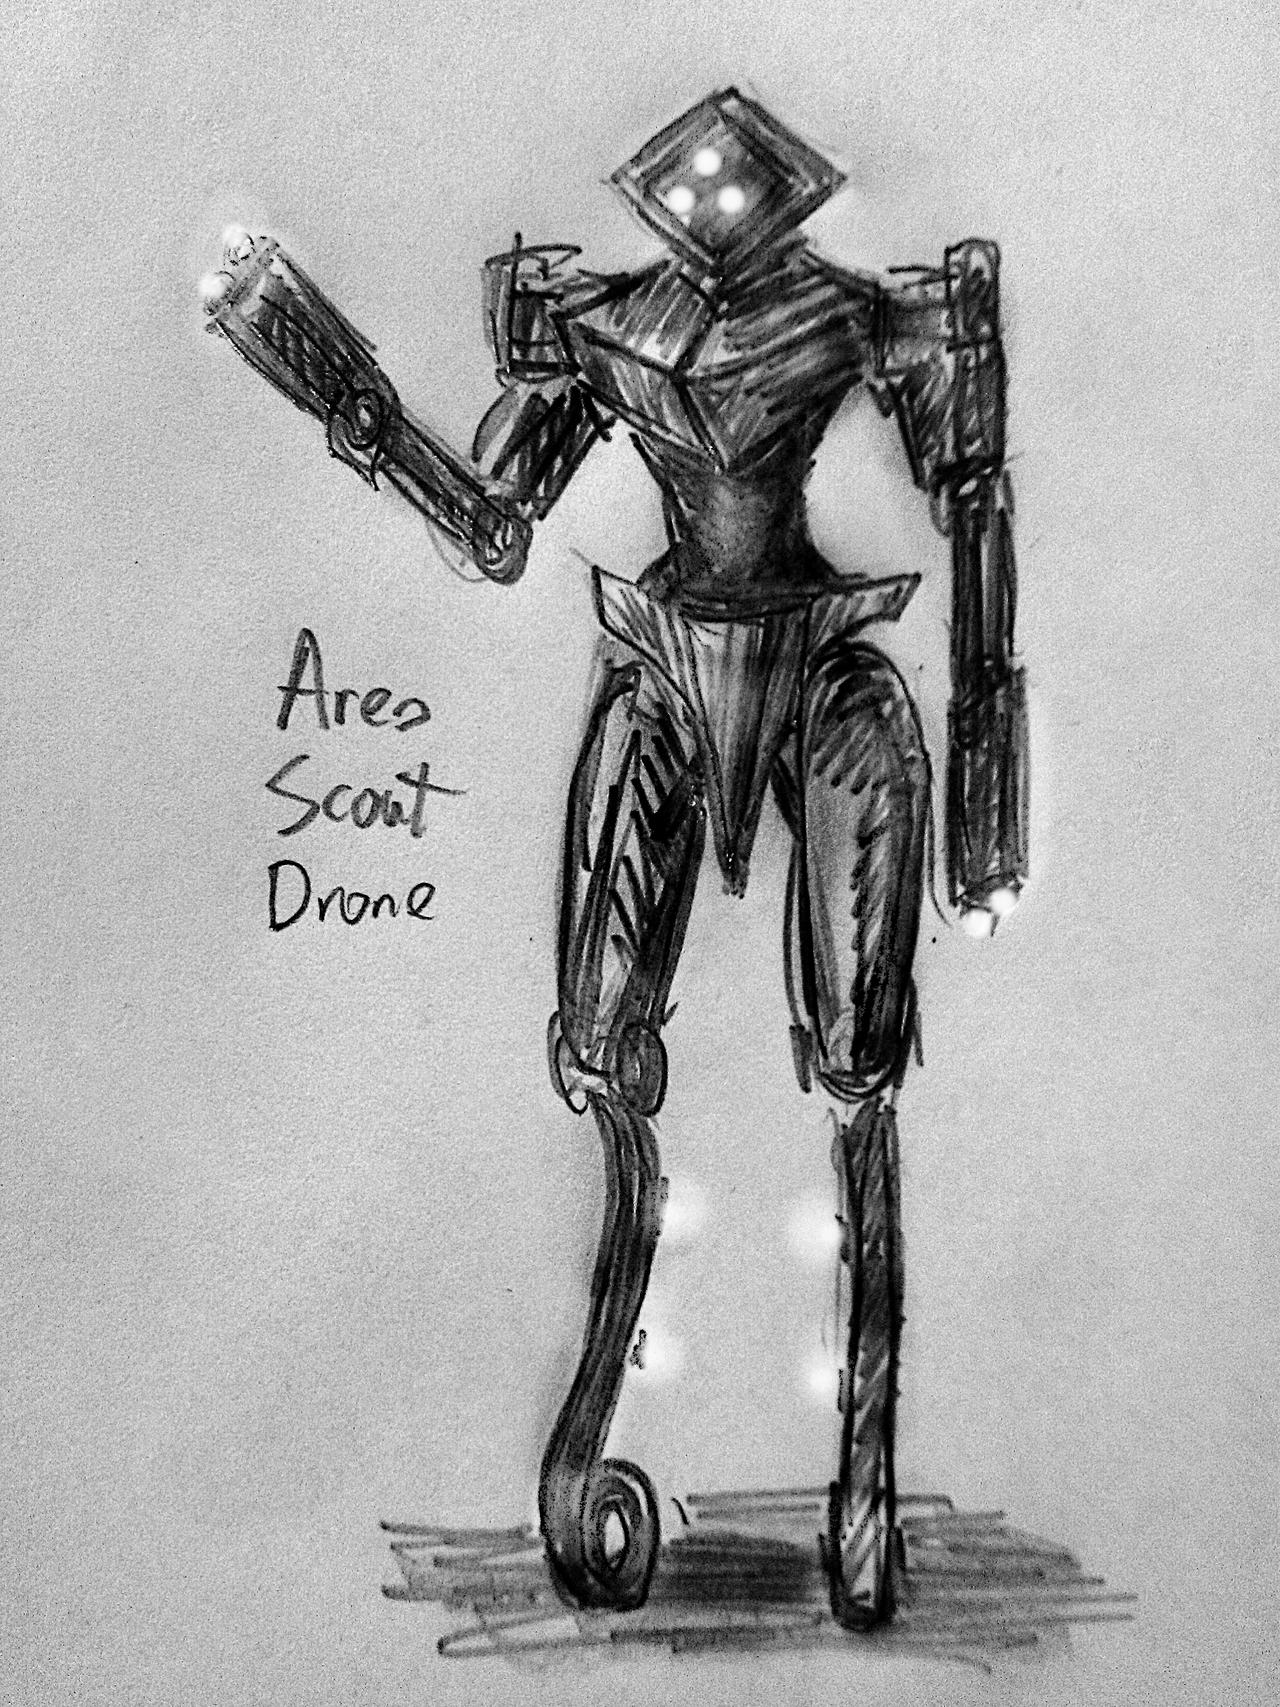 ares_scout_drone_by_huginthecrowda_ddfsz